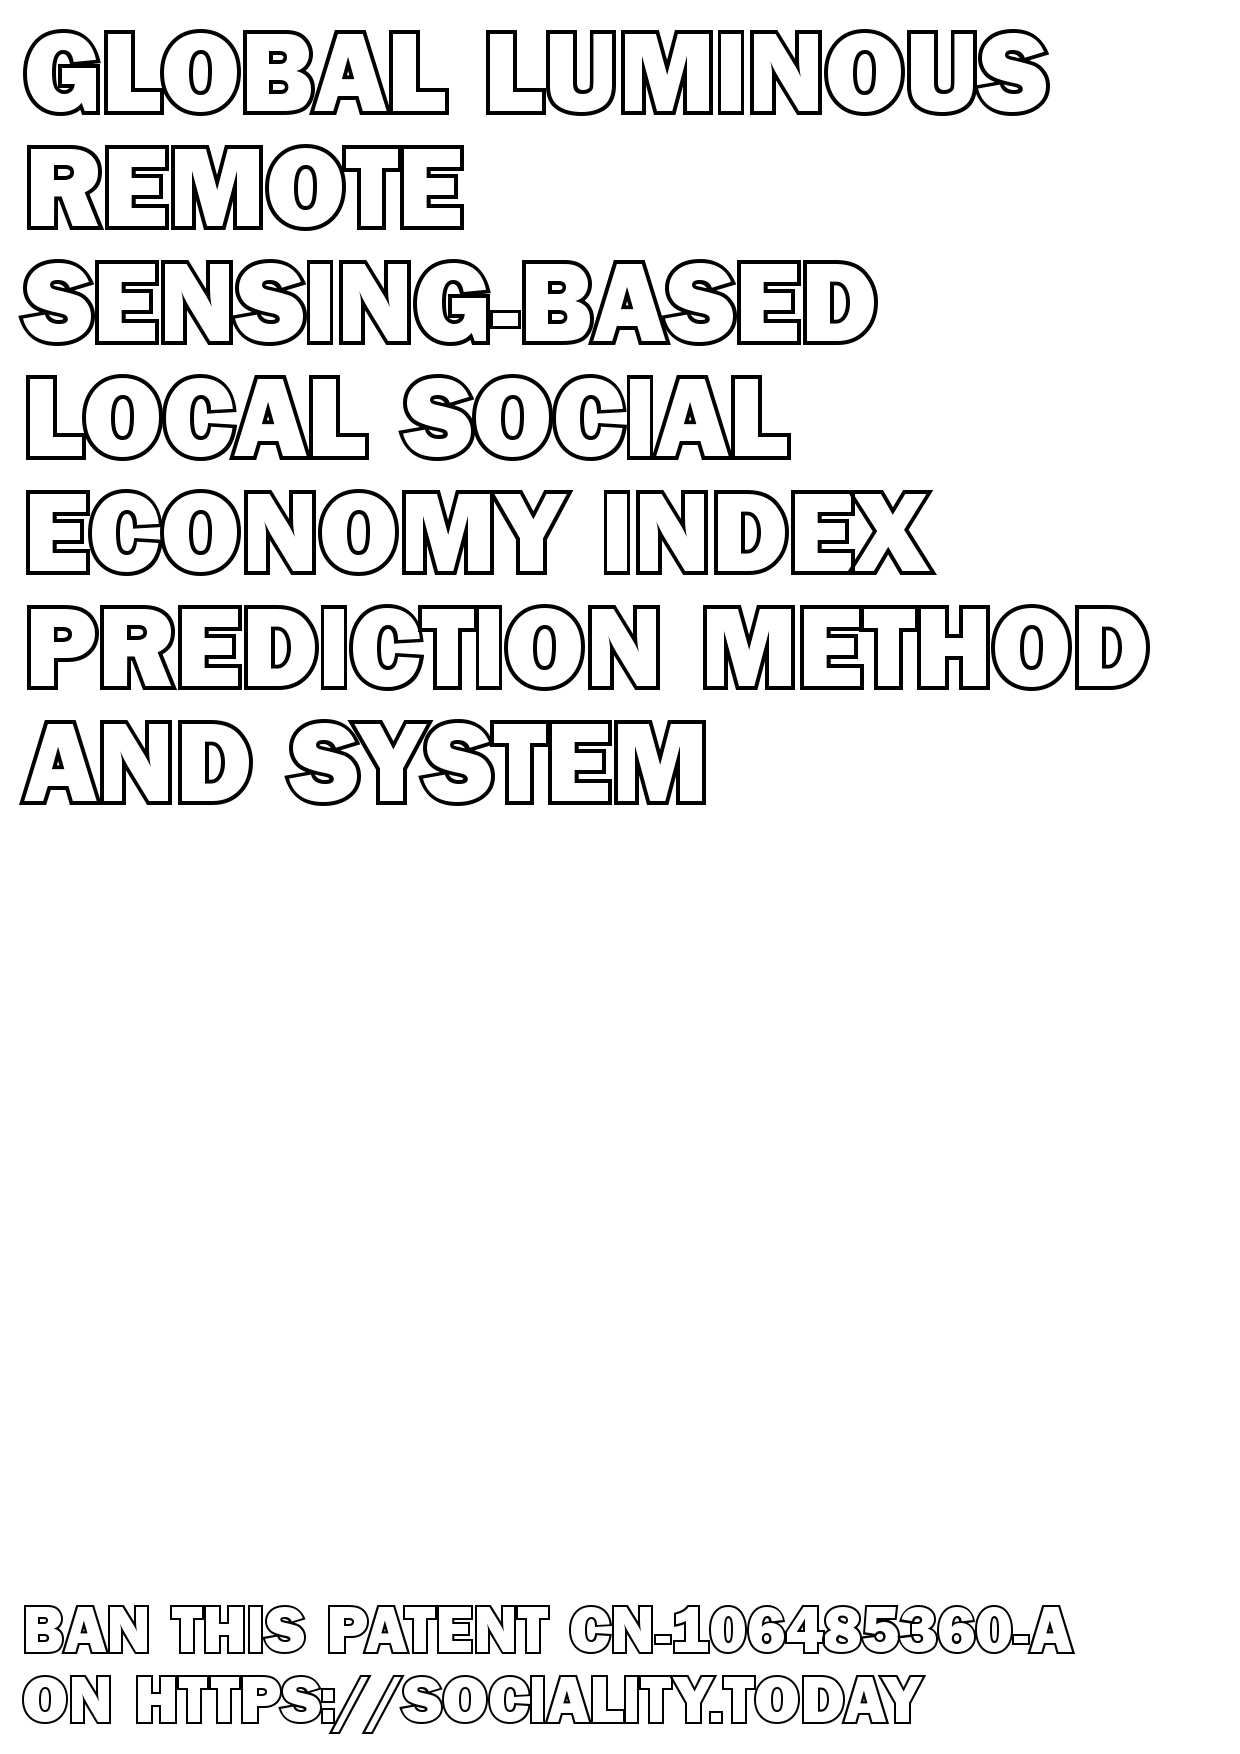 Global luminous remote sensing-based local social economy index prediction method and system  - CN-106485360-A